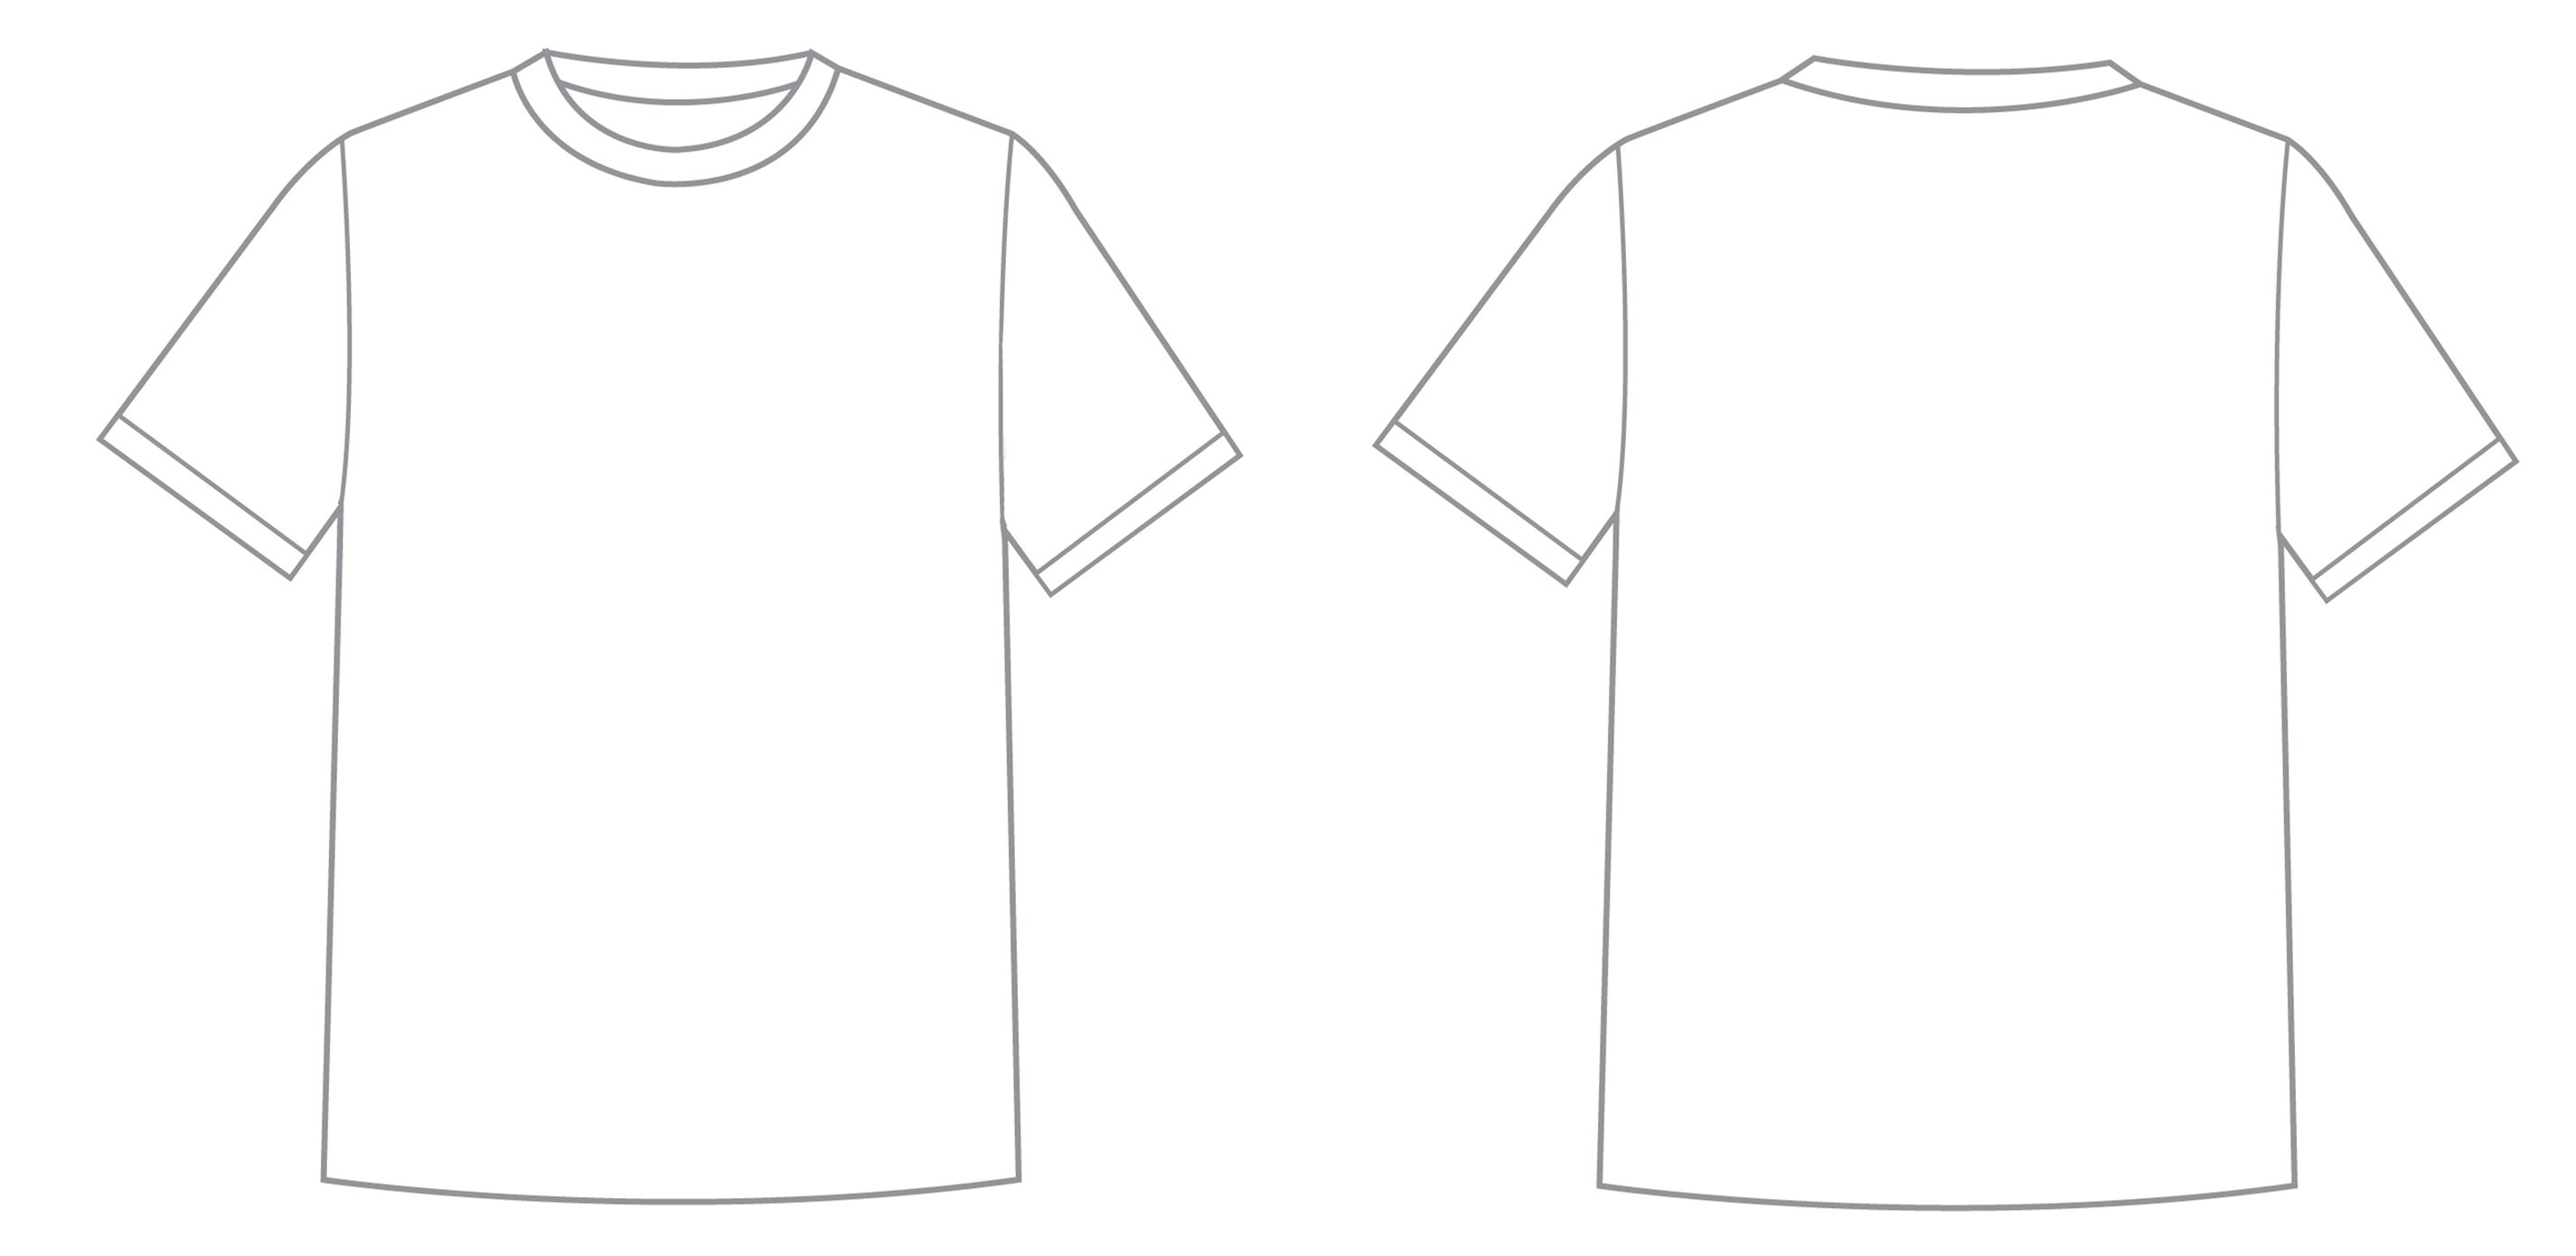 TShirt Template  Man Cake And Template